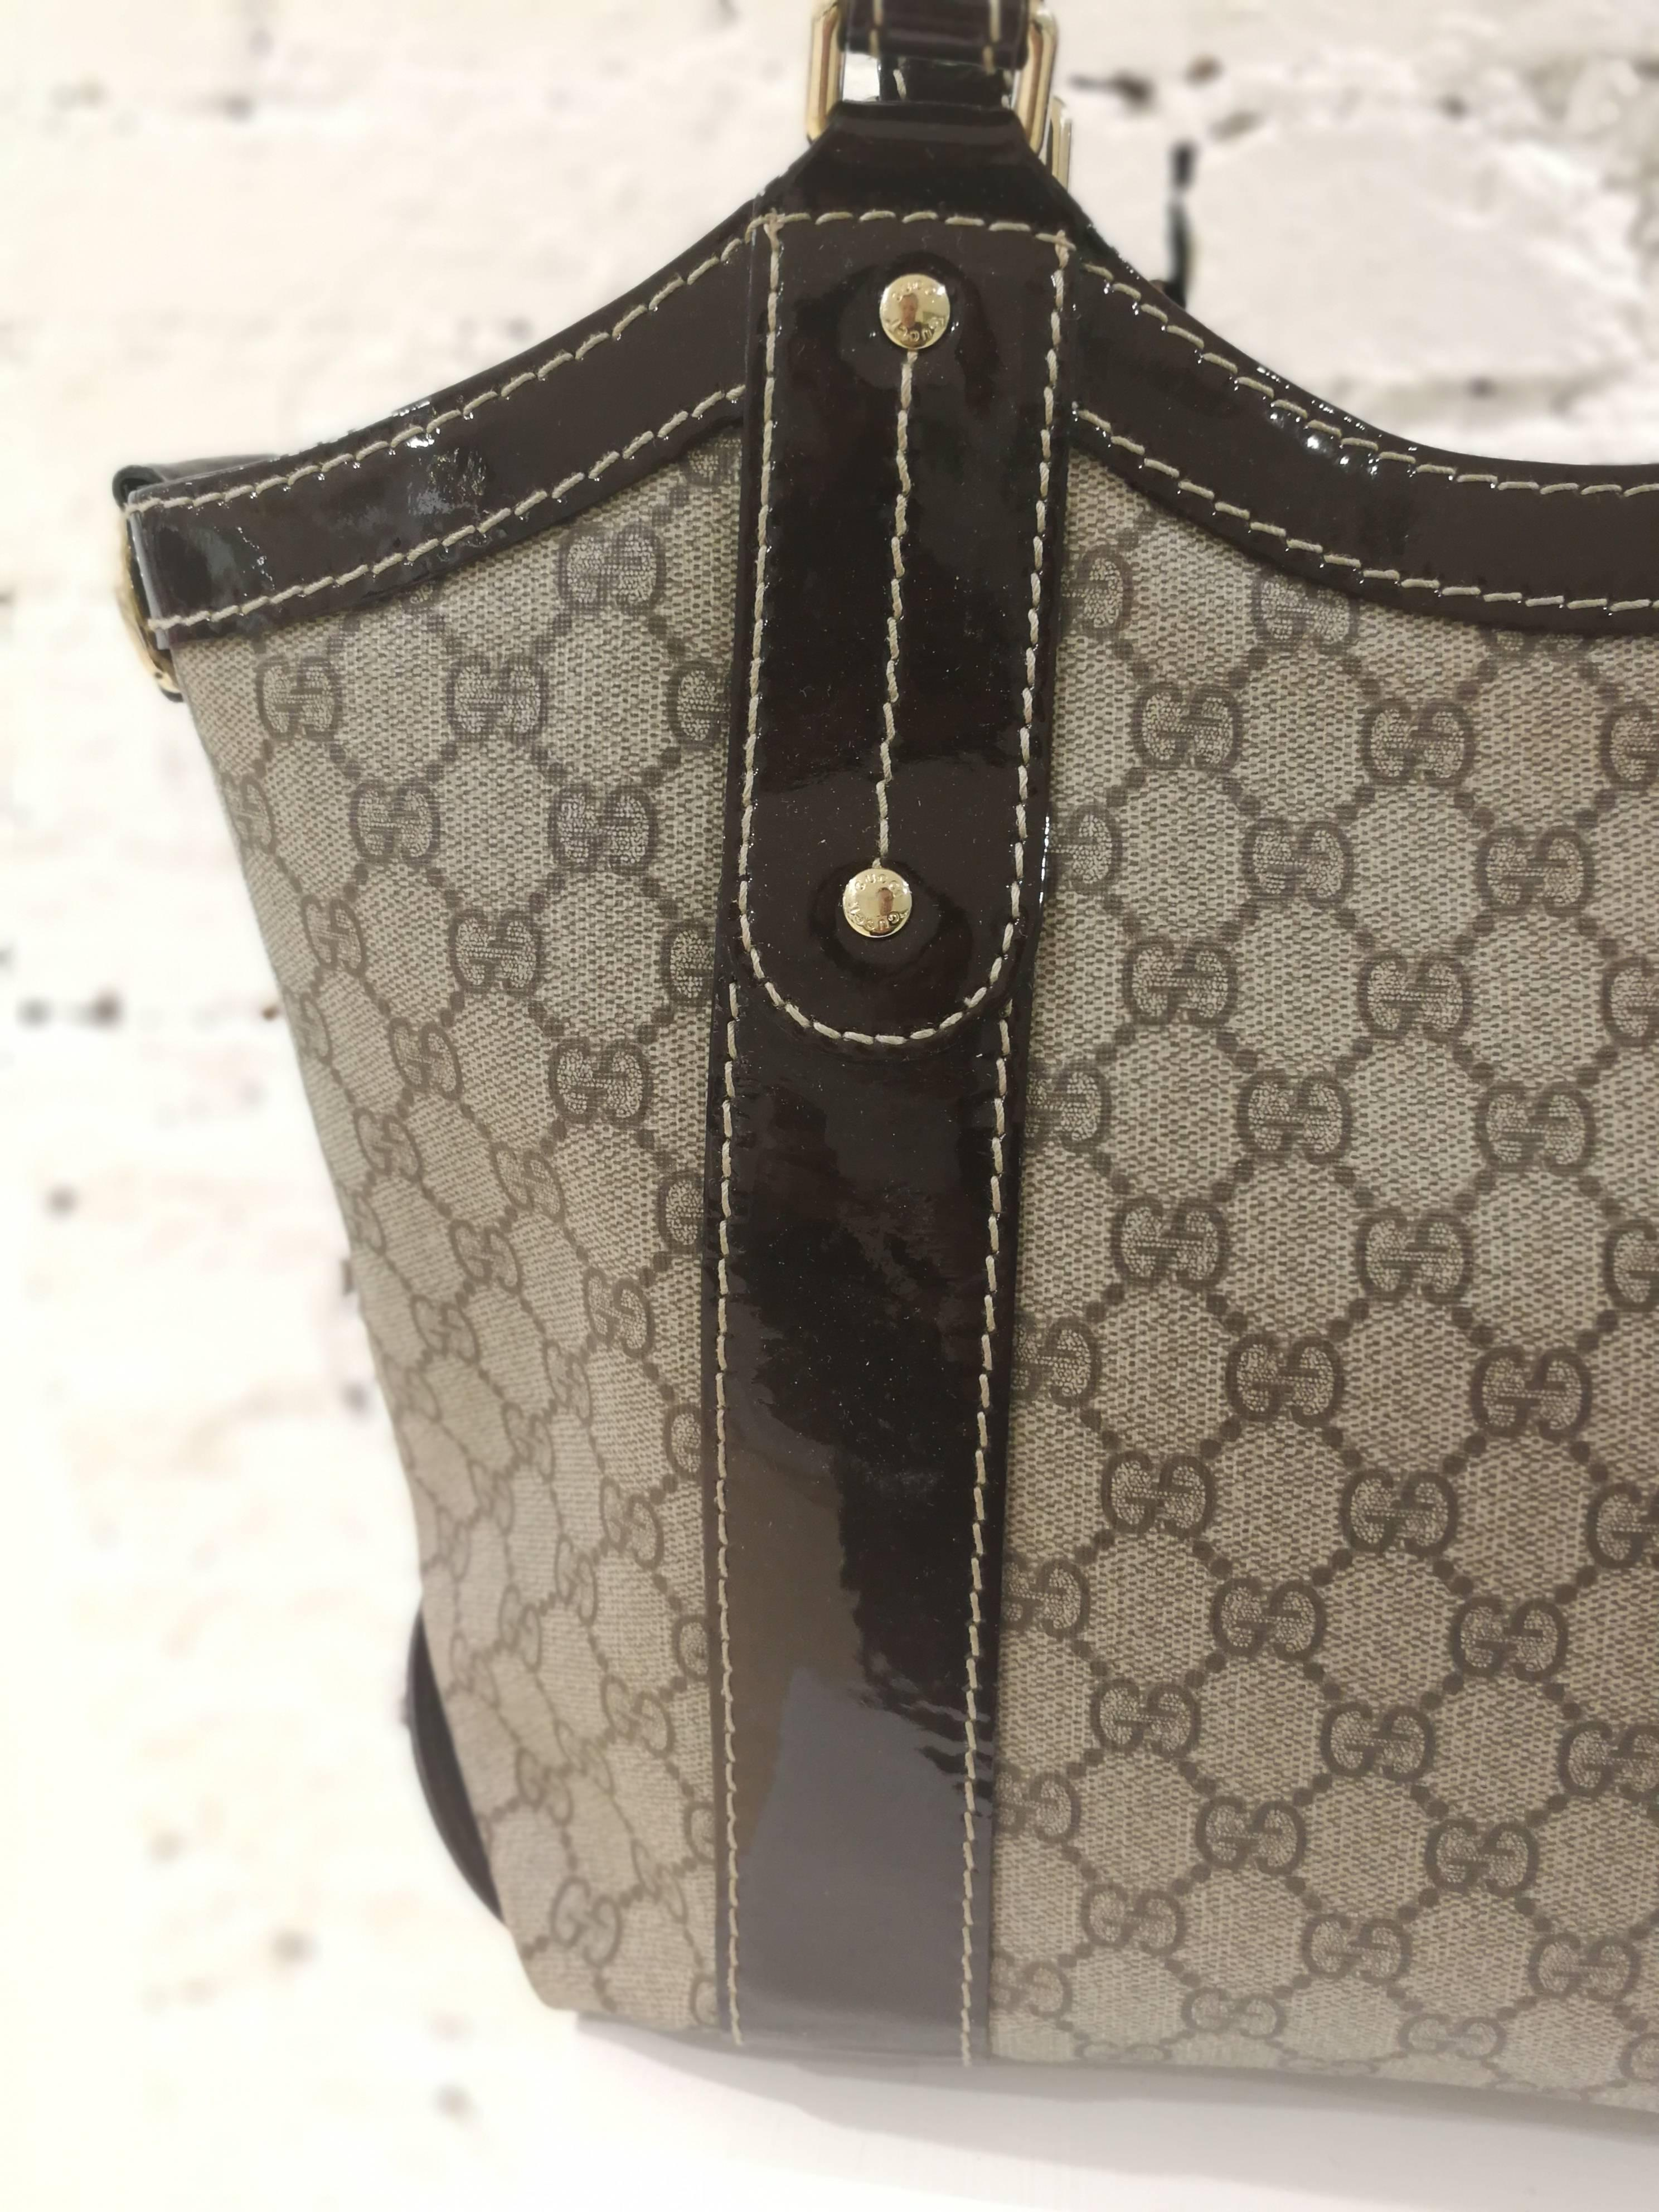 c150b389445 Gucci Textile Patent Leather Bow GG Shoulder Bag For Sale at 1stdibs